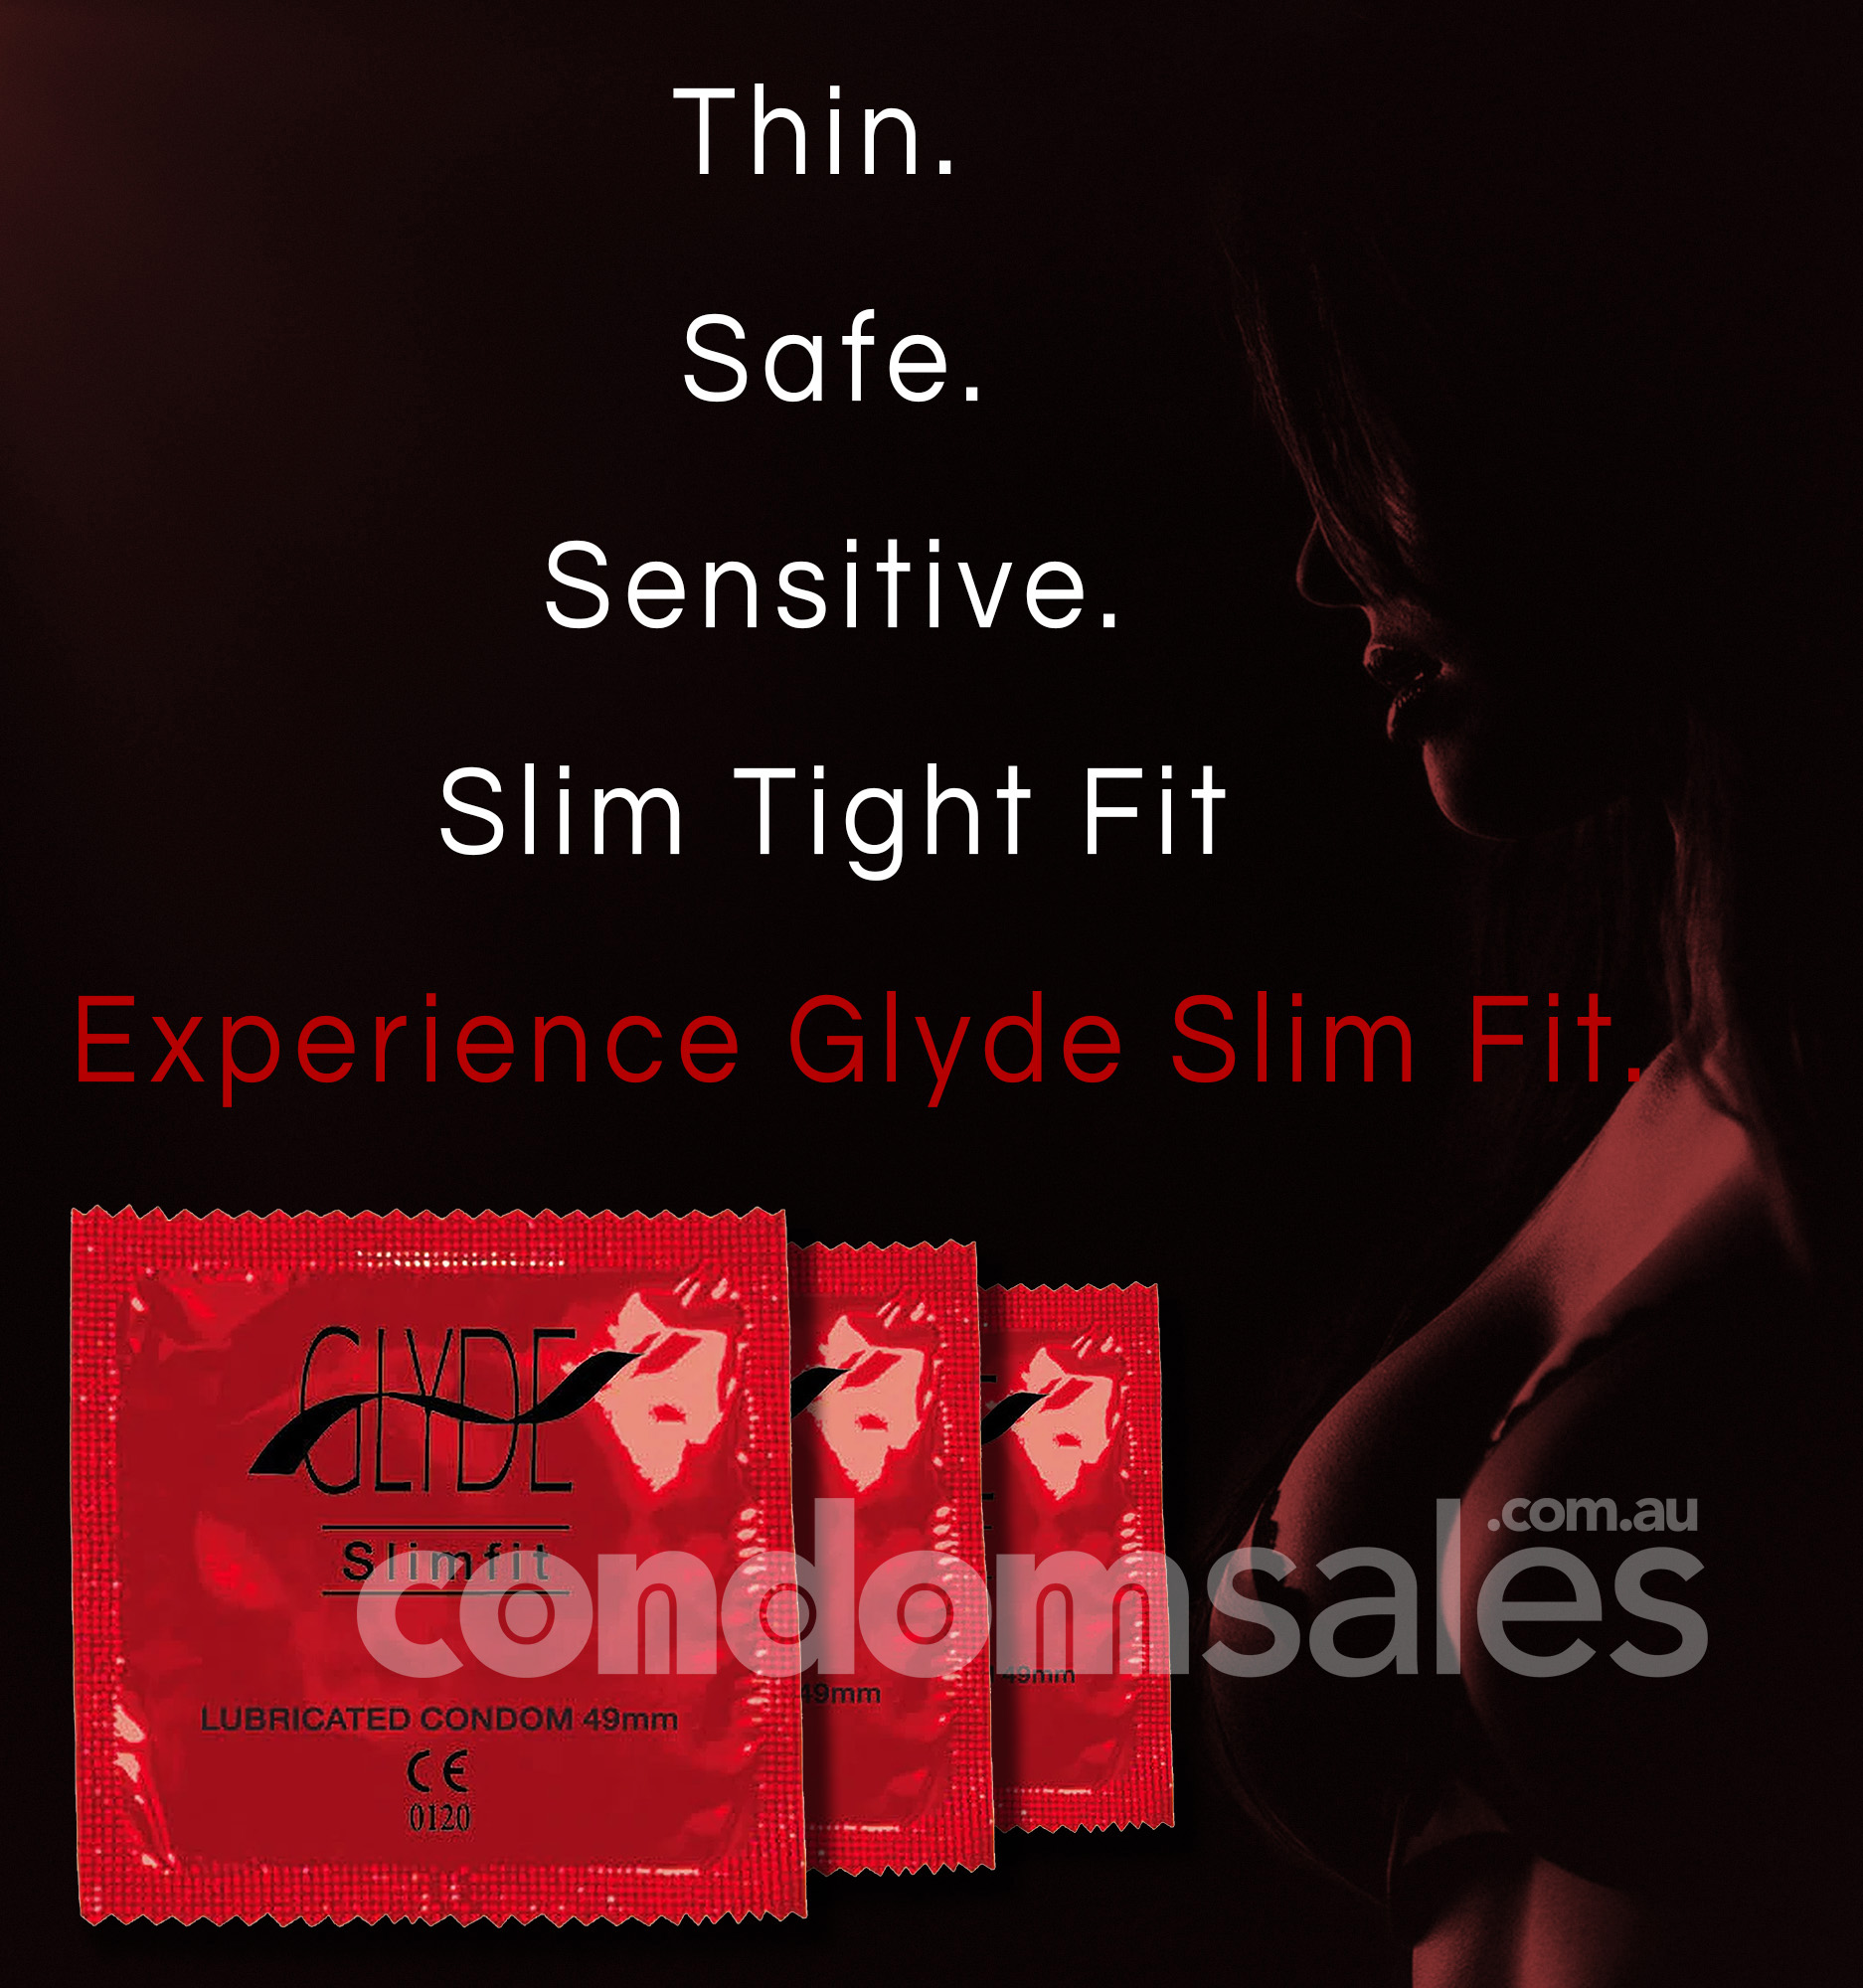 Glyde Slim Fit RED - Small 49mm Condoms (24 Pack)